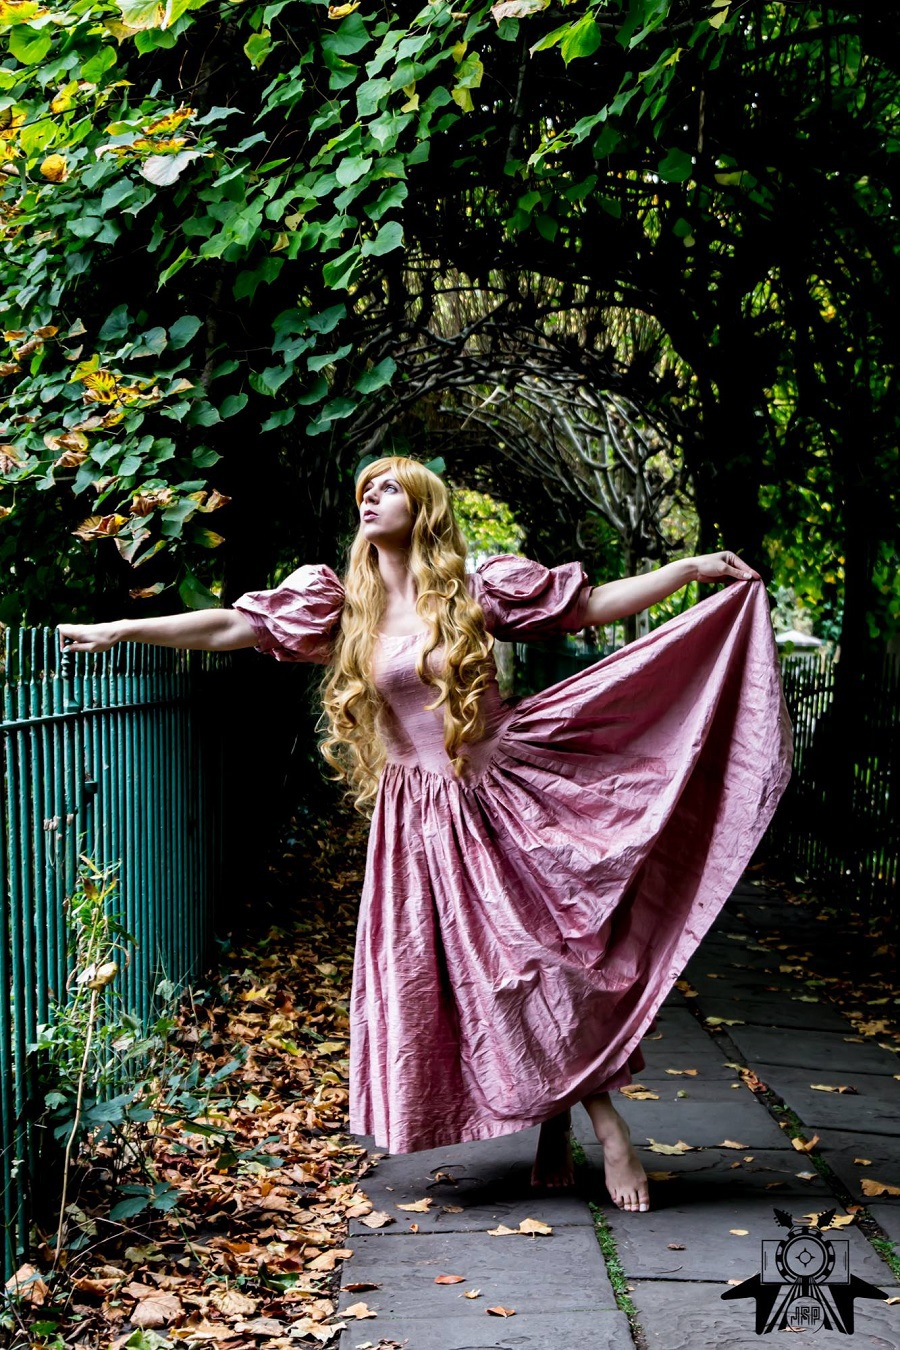 A princess / Photography by JeffSp, Model Freya, Makeup by Freya, Stylist Freya, Hair styling by Freya / Uploaded 22nd October 2017 @ 12:44 PM